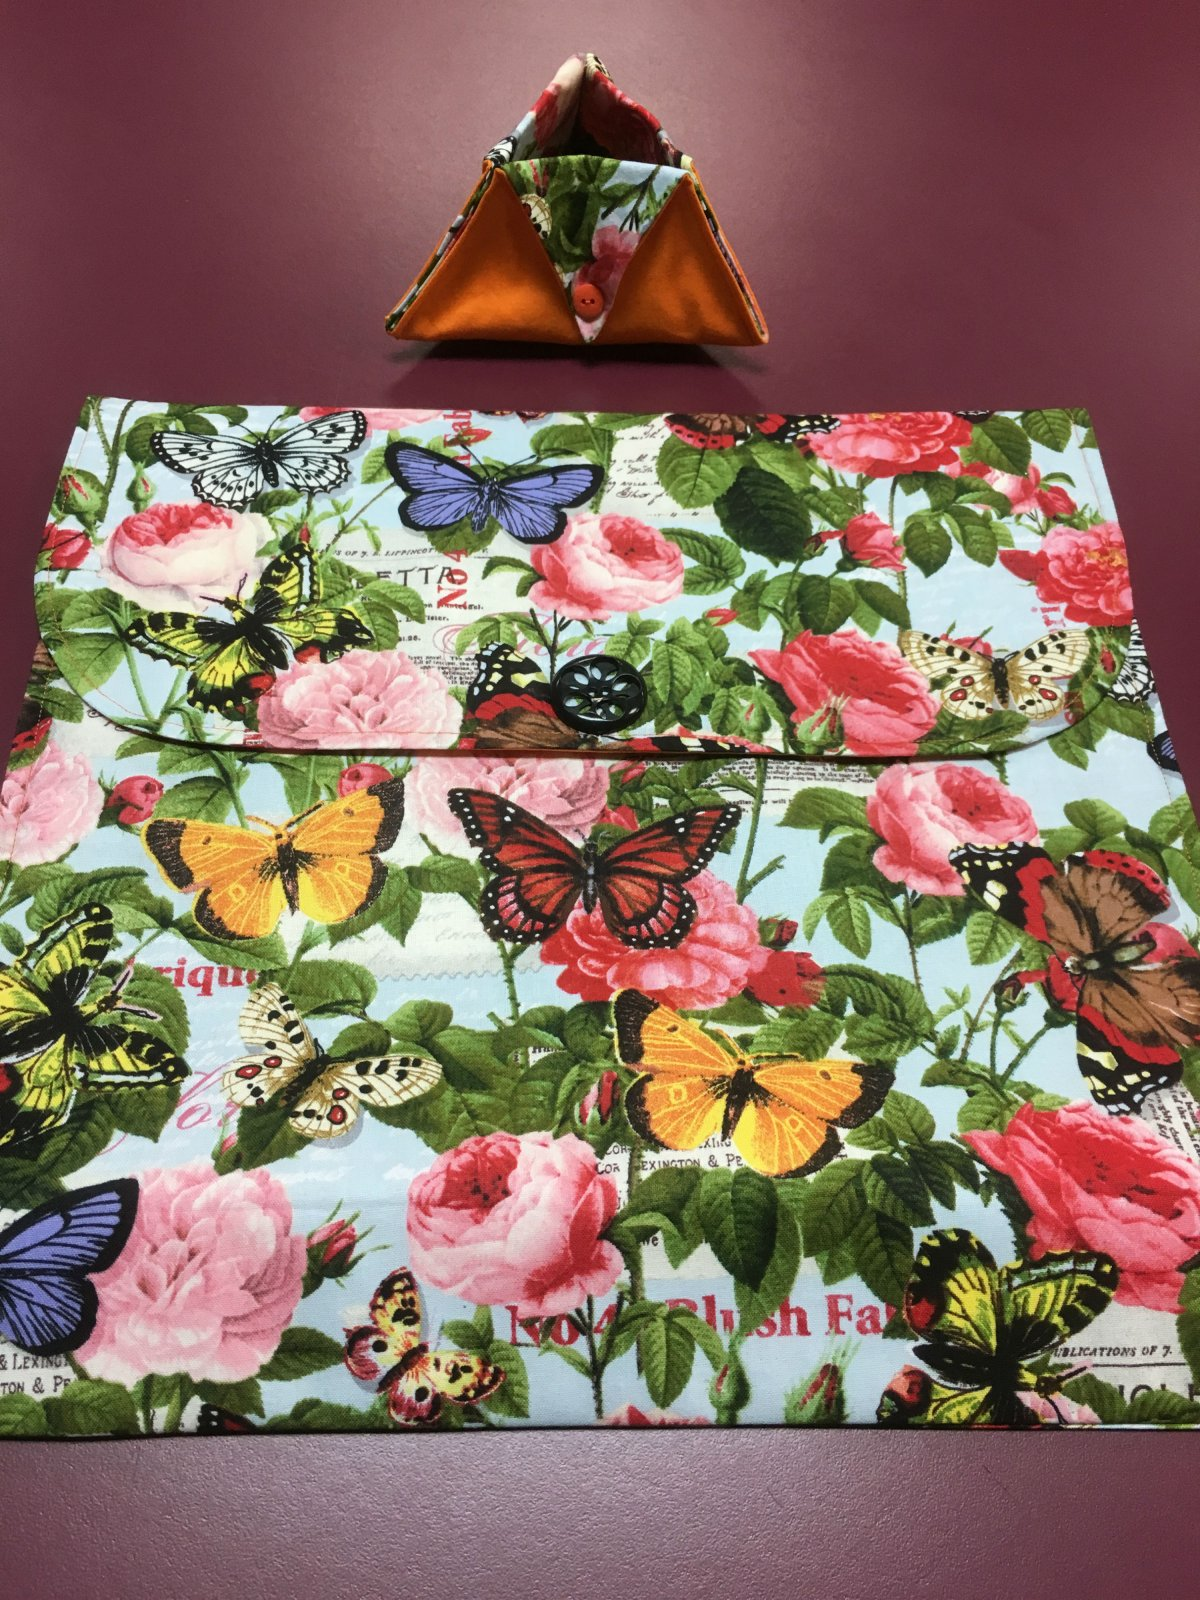 Project bag and ort bag - Flowers and Butterflies 14 x 13.25